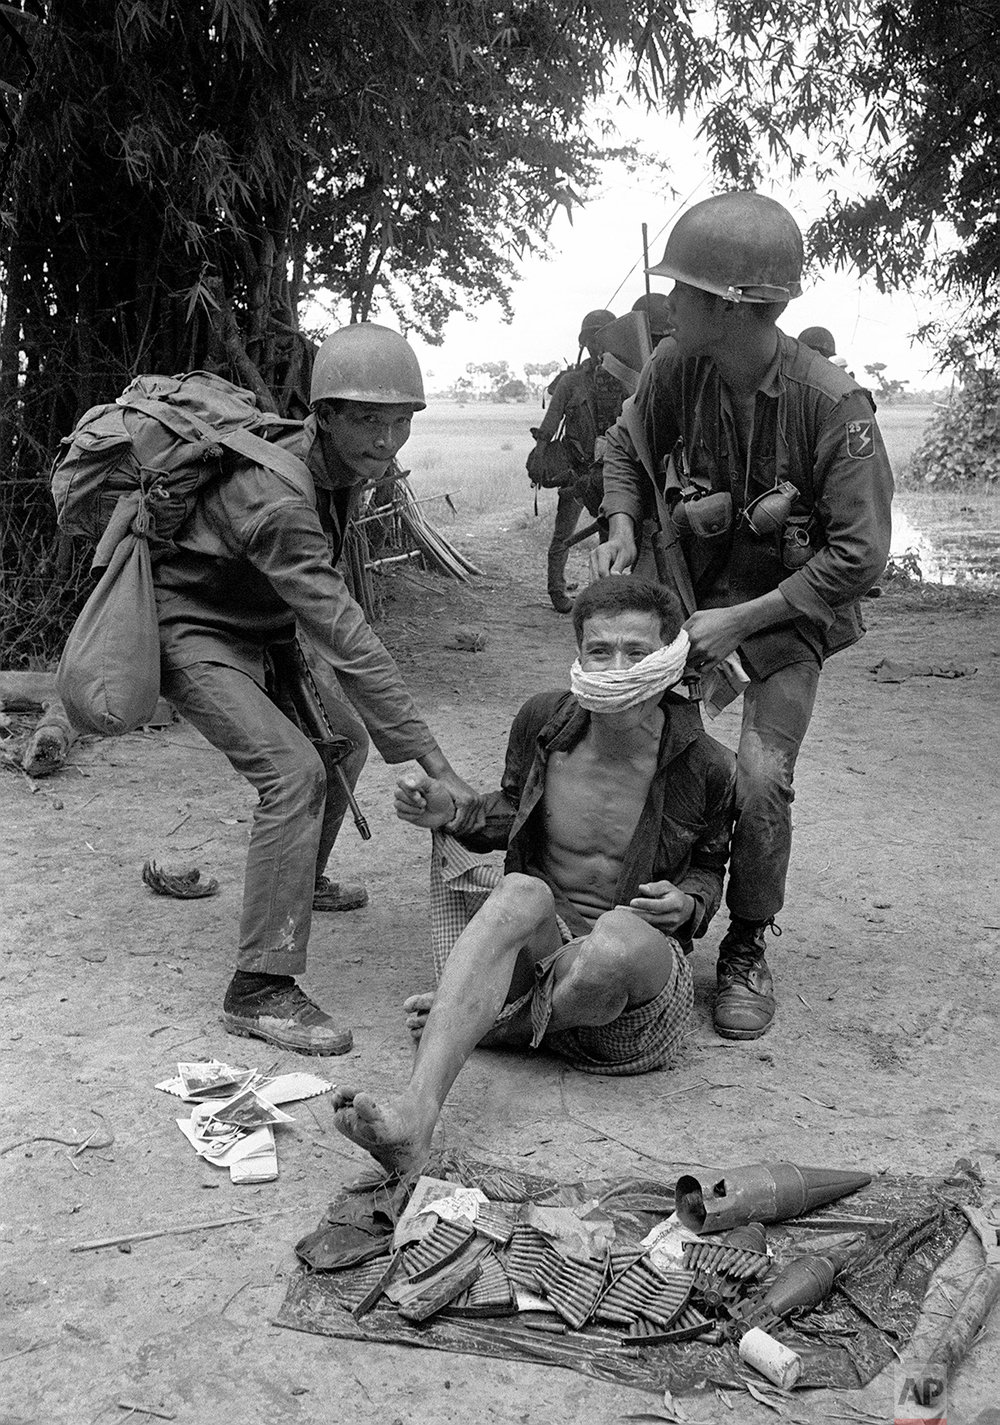 South Vietnamese ARVN soldiers restrain a Khmer Rouge suspect captured near ammunition in a Cambodian village on July 30, 1971.  The suspect was taken to ARVN headquarters for questioning.  (AP Photo/Nick Ut)